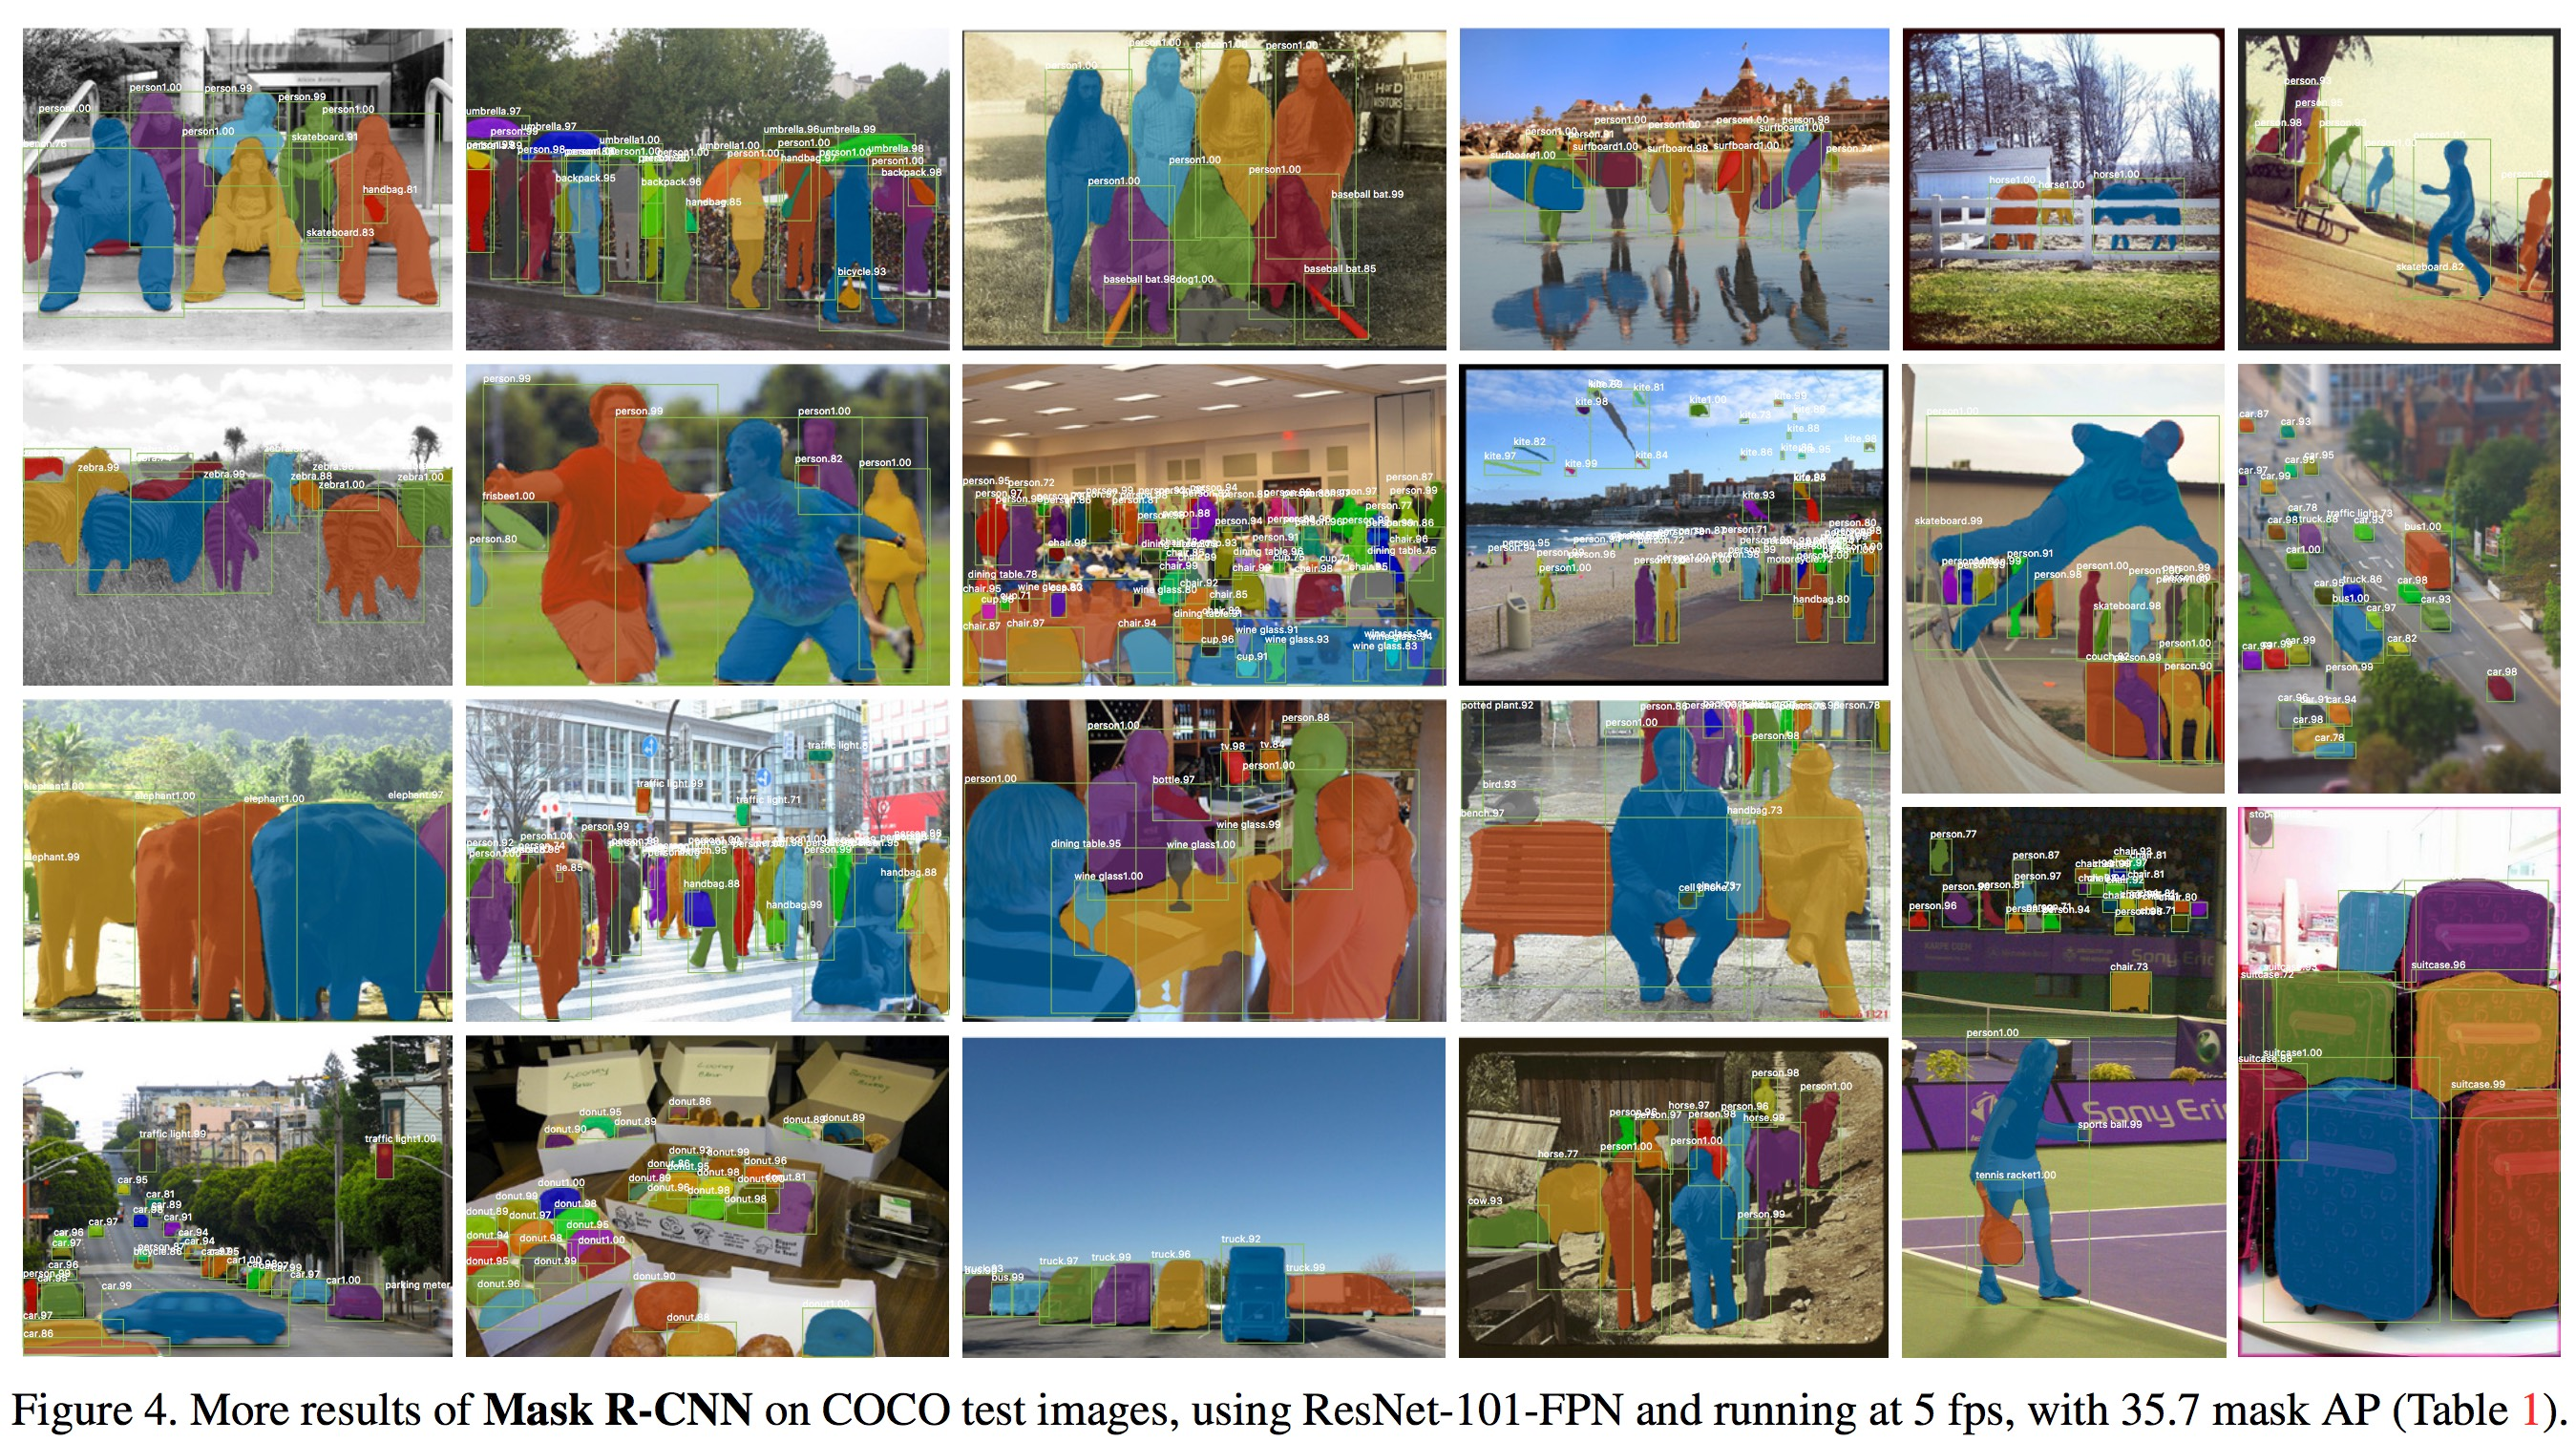 More results of Mask R-CNN on COCO test images